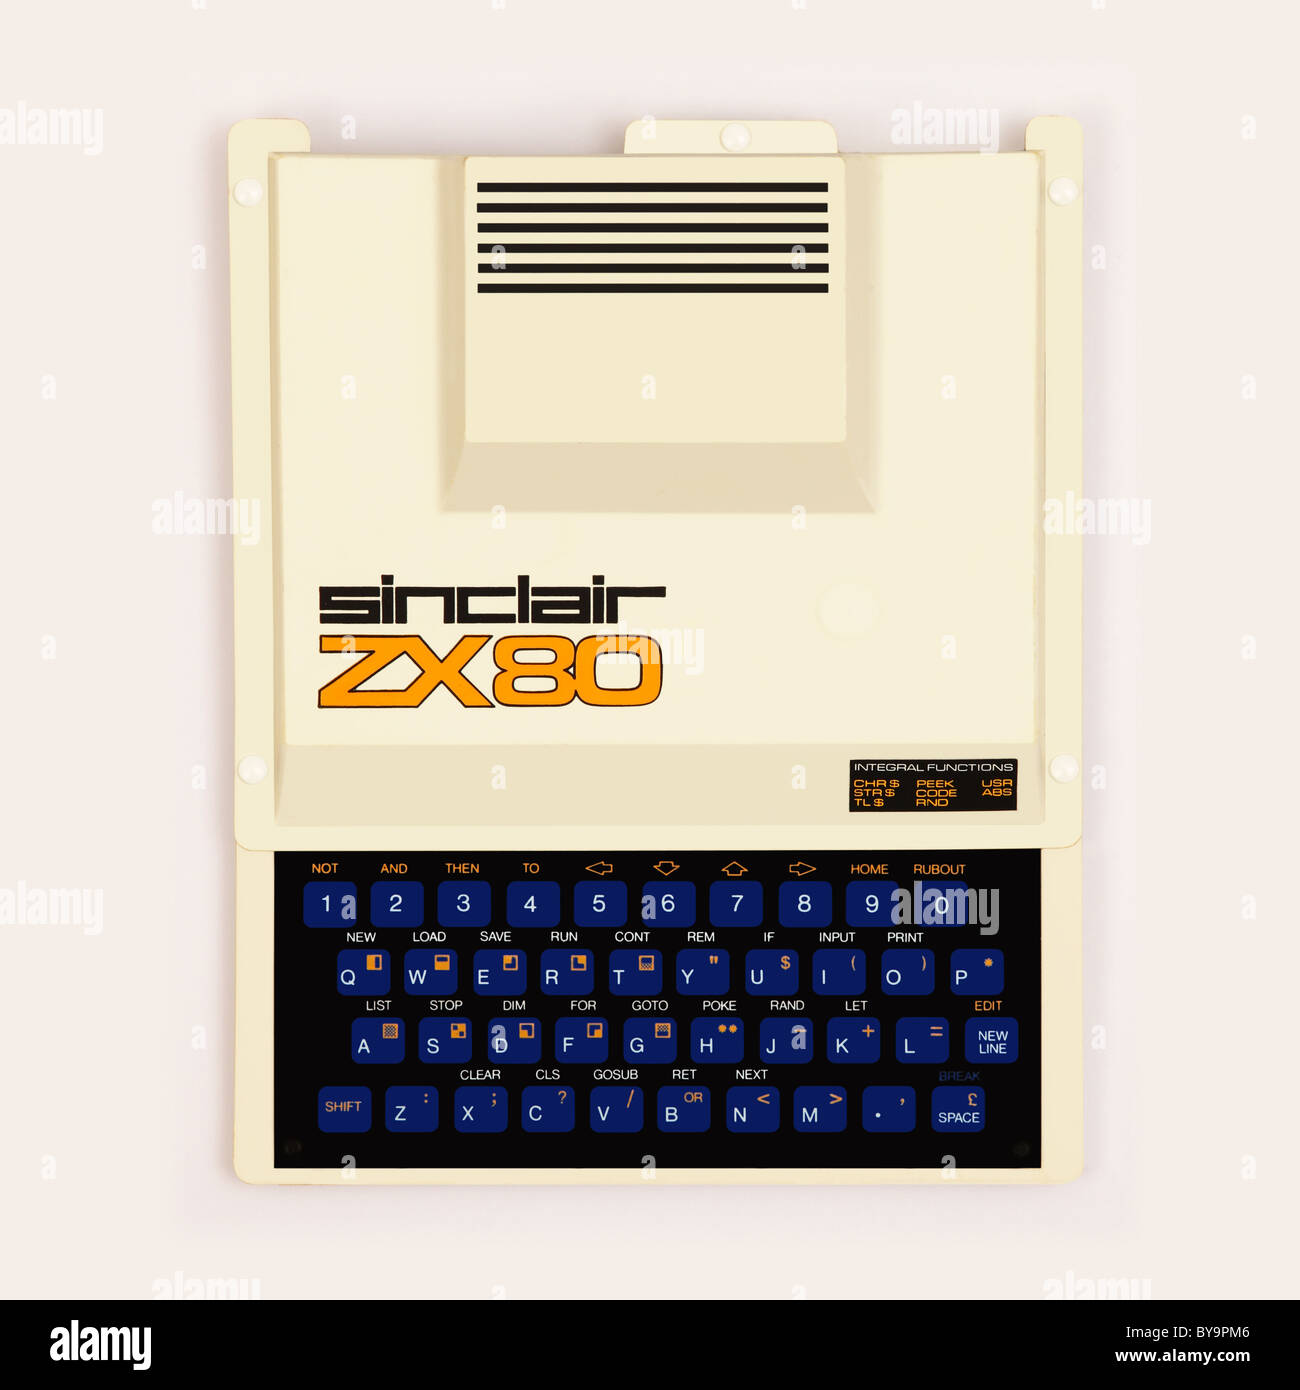 1980 Computer Stock Photos Images Alamy Zx80 Circuit Diagram Sinclair Personal From Image